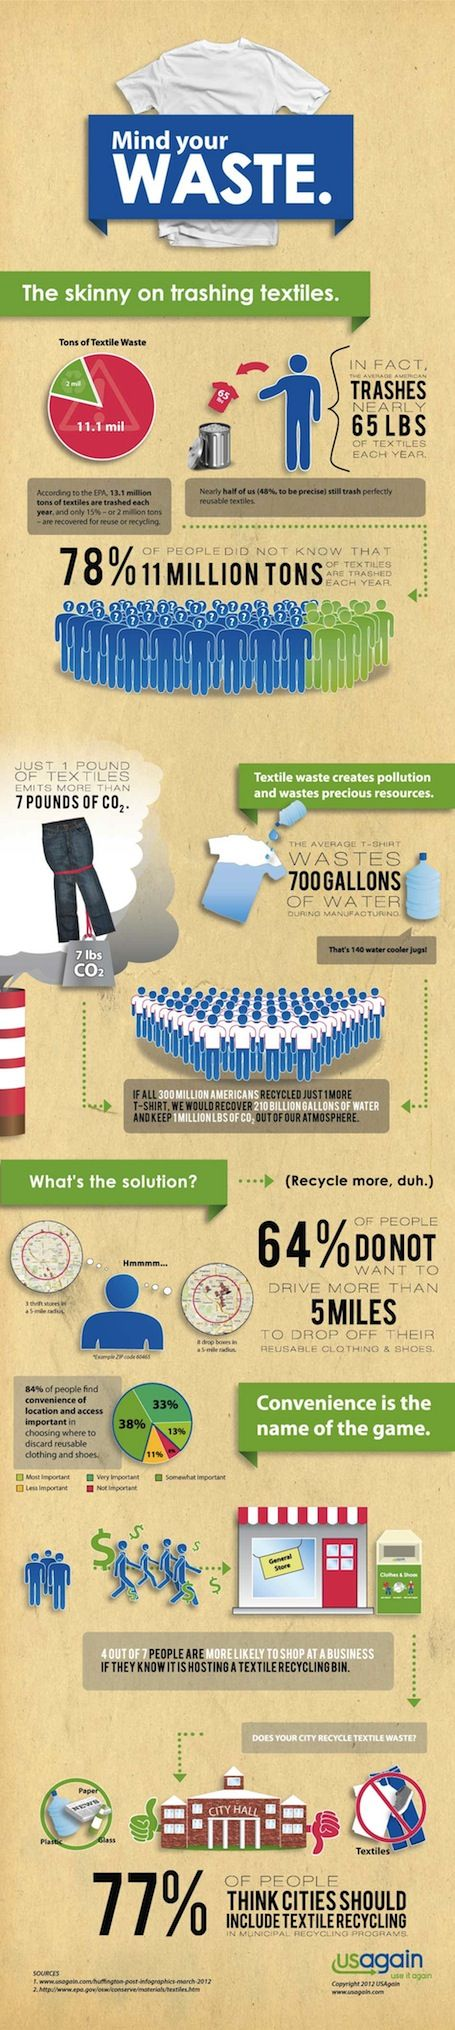 Chapter 6 mentions the growing problem of waste that consumers create. In the fast-fashion, trendy society that we live in, clothing is often thrown away before it lives its full lifespan. This info-graph better depicts what happens to fabric when it is thrown away.